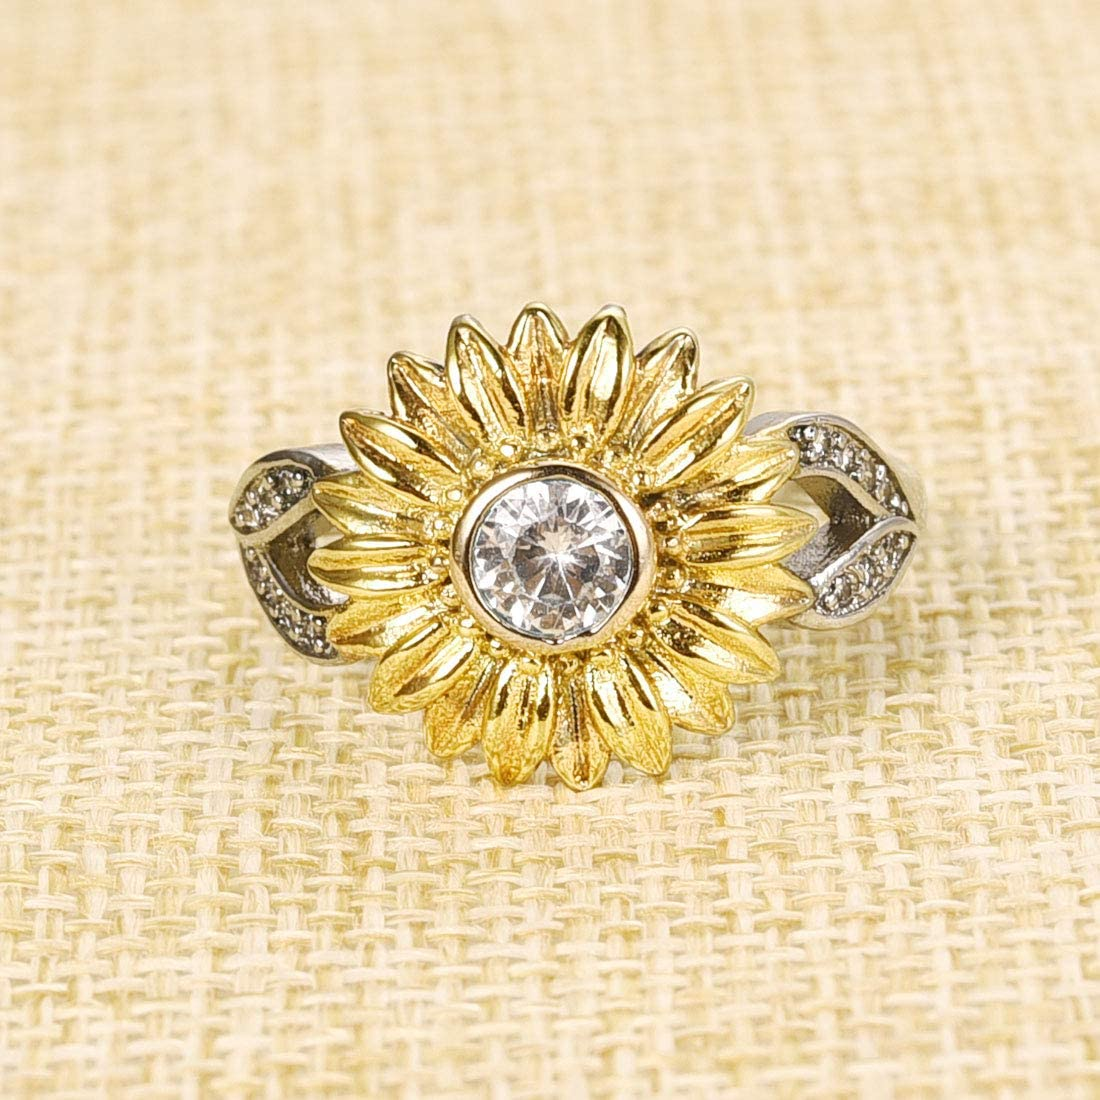 DALARAN Sunflower Ring for Women Girls Eternity Band Rings Size 6 7 8 9 10